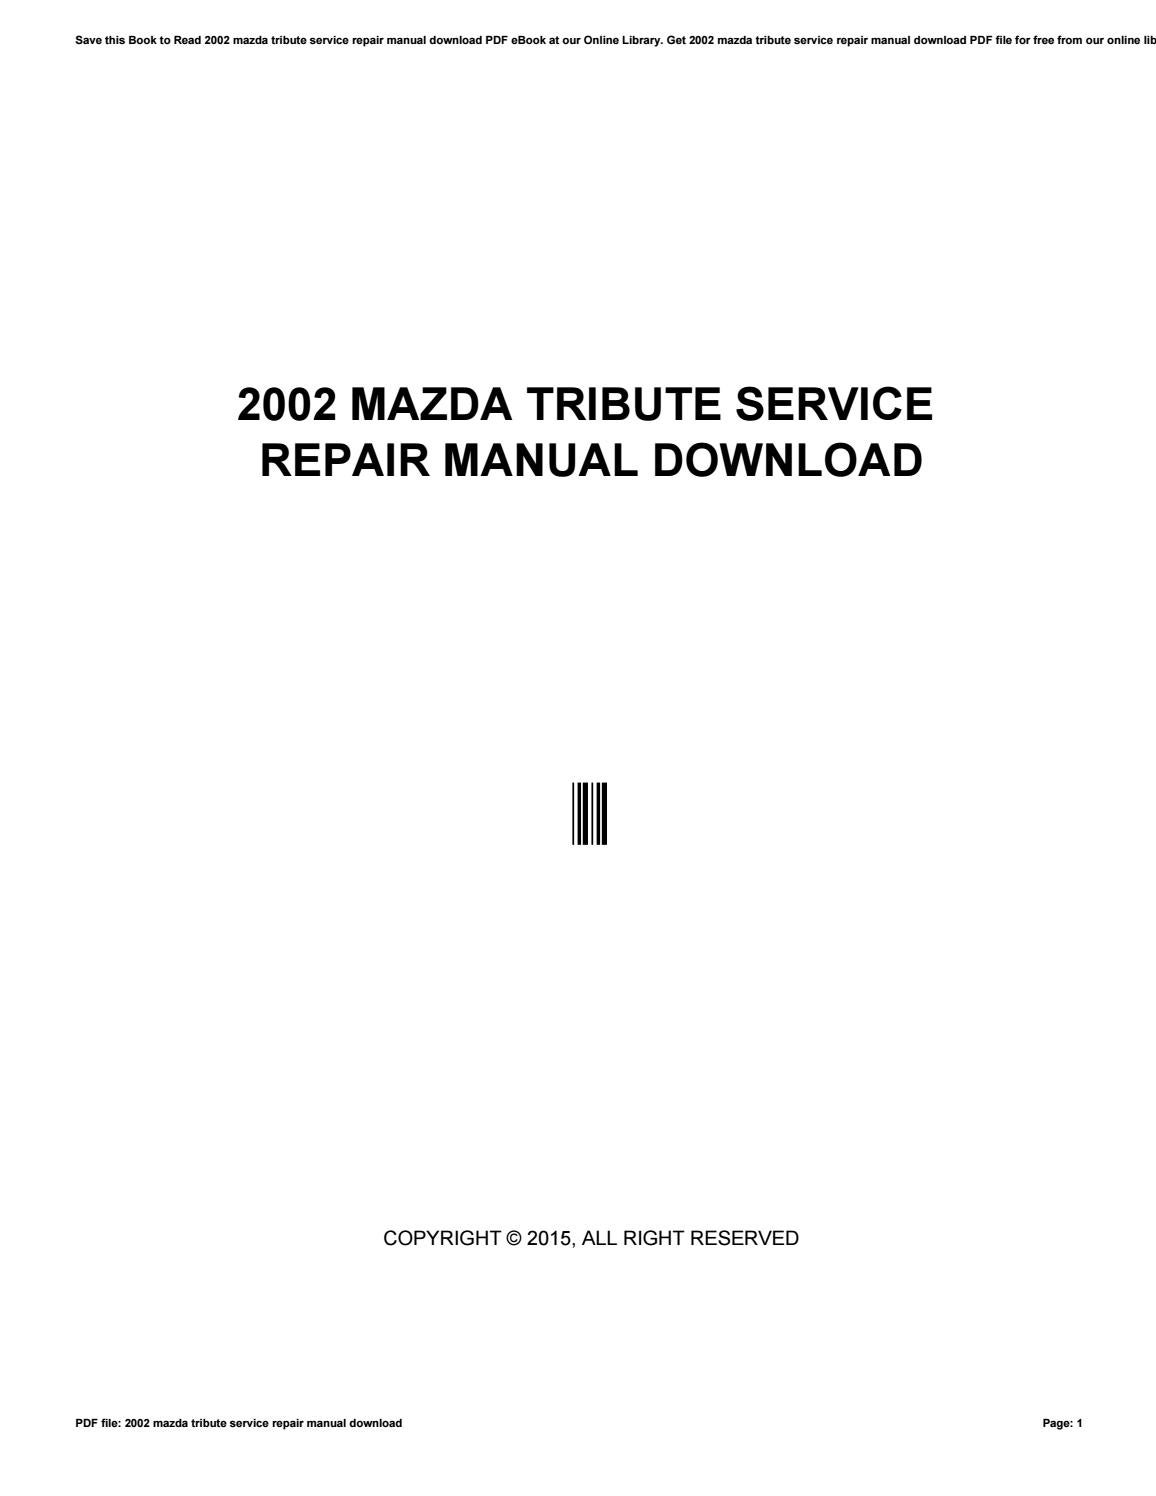 2002 mazda tribute service repair manual download by mankyrecords5 - issuu